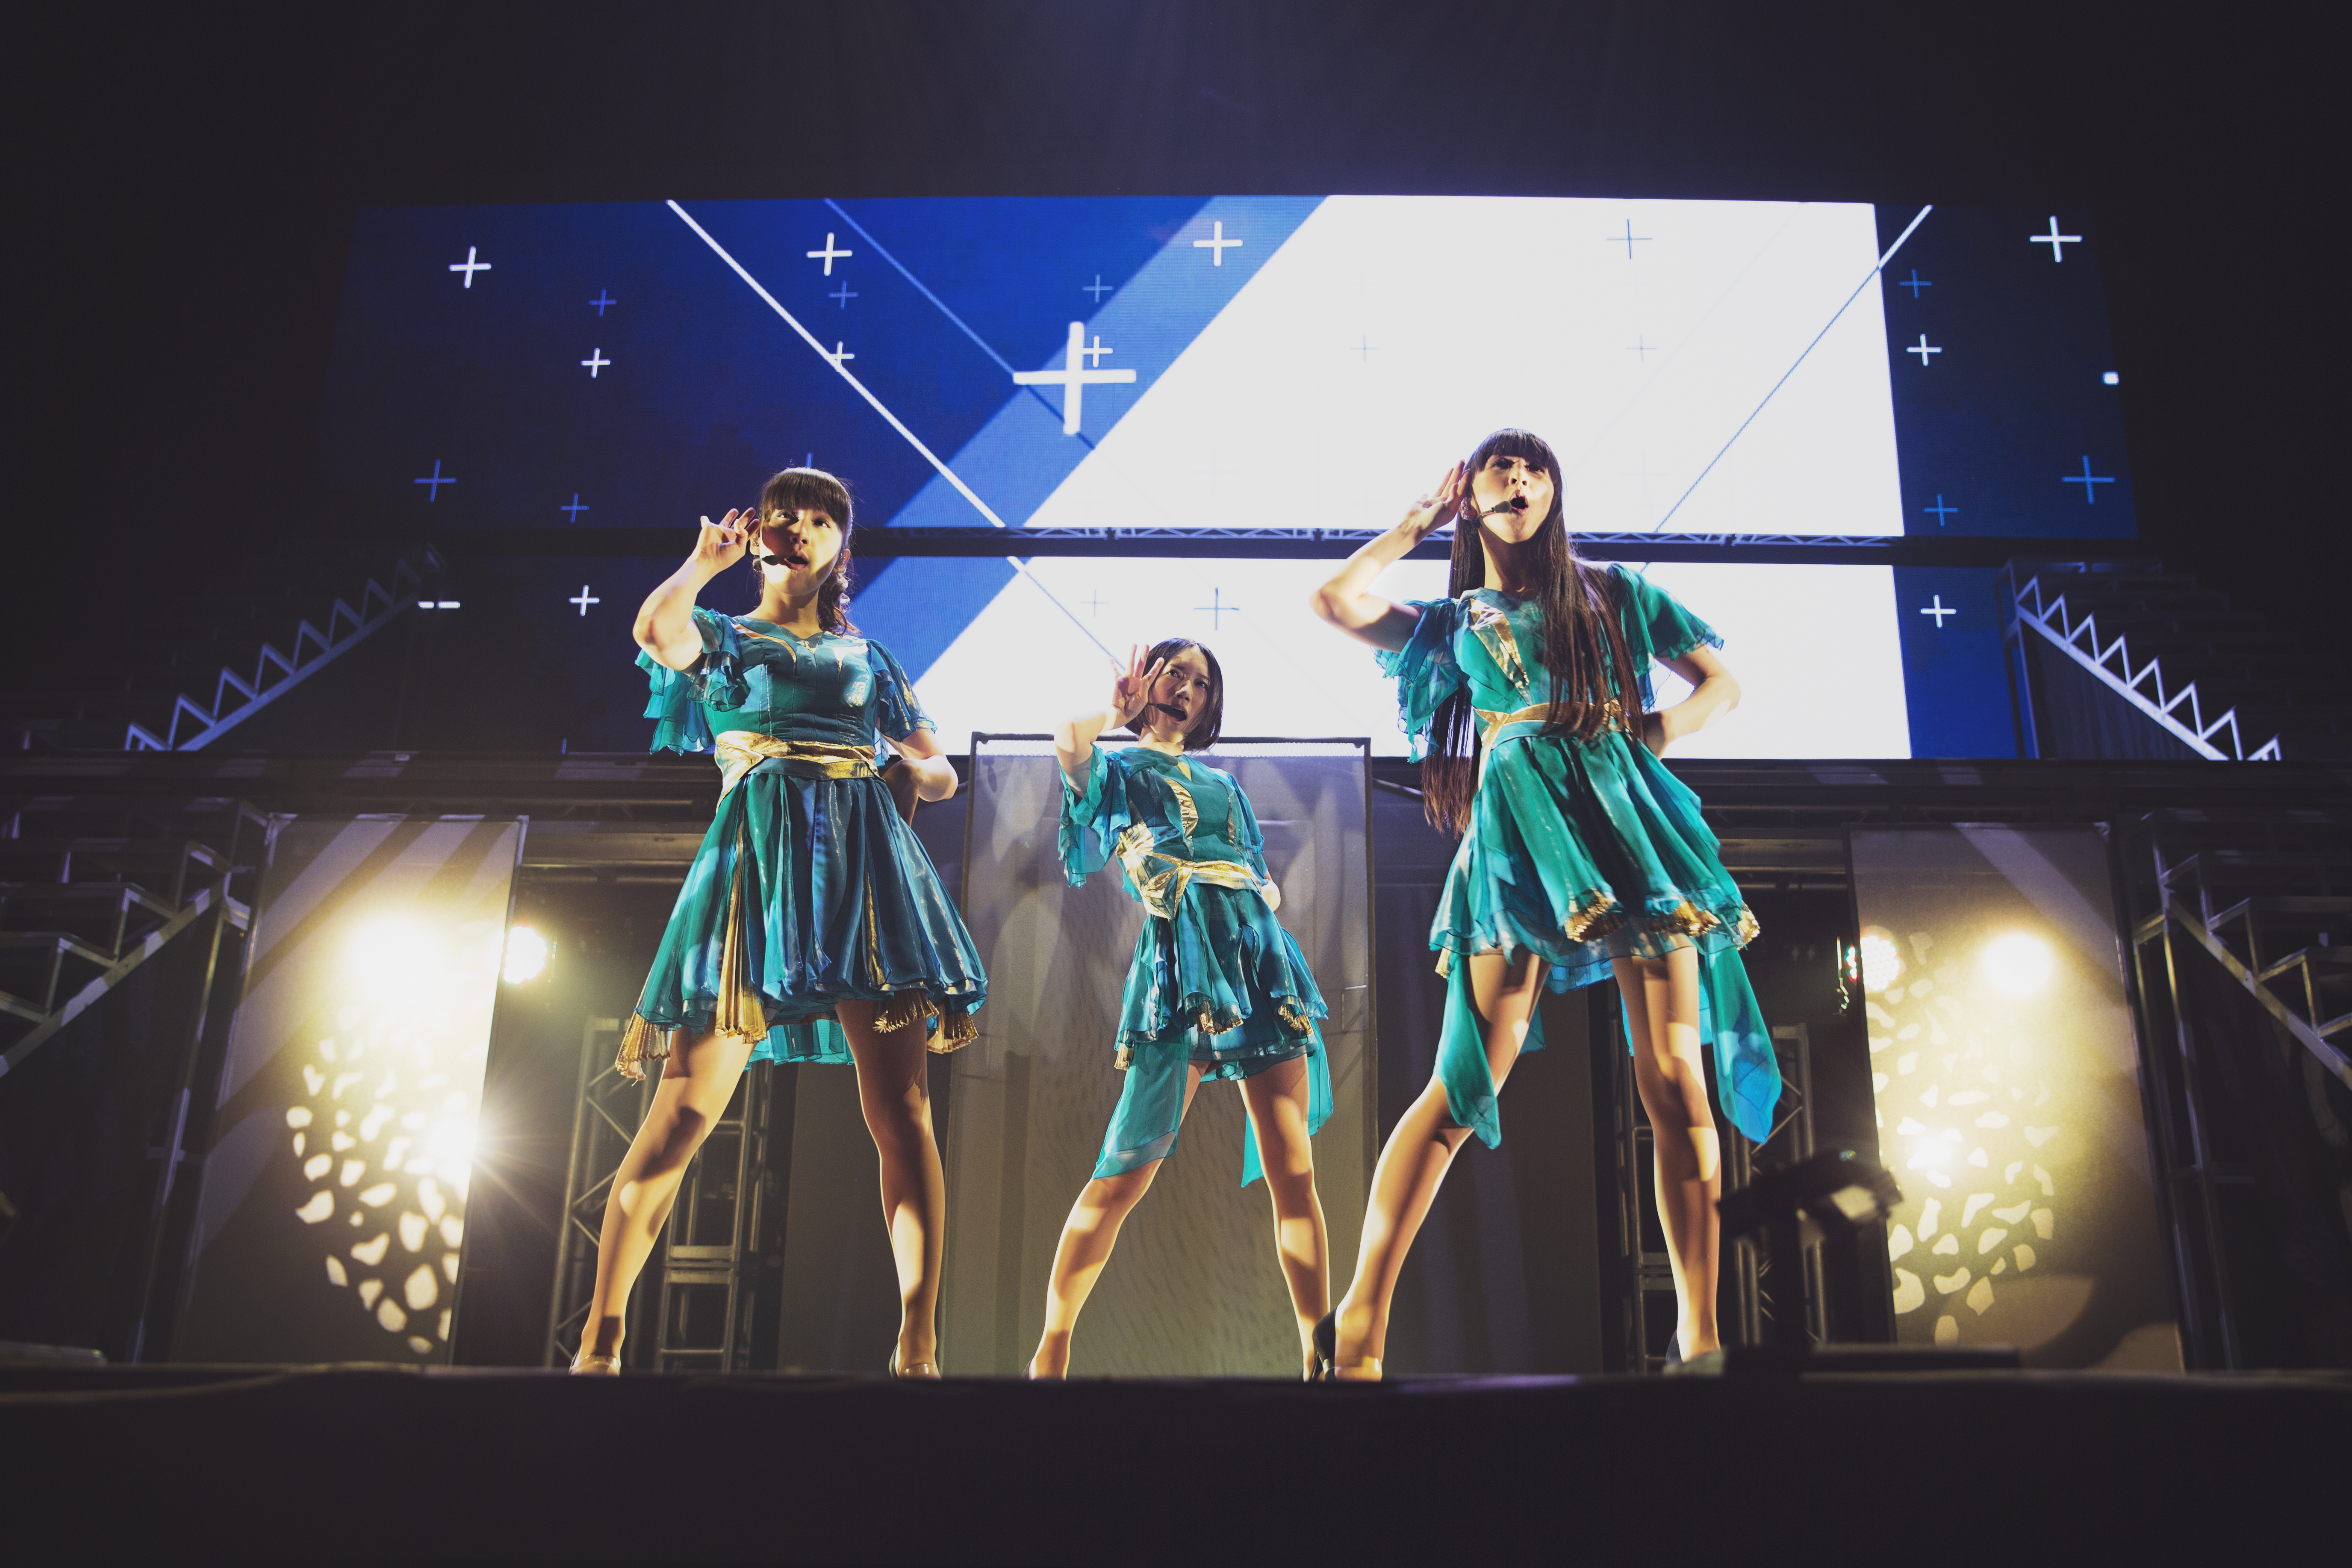 Tuned In Tokyo >> PERFUME LIVE + IN COSTUME: THE QUEENS OF J-POP TAKE OVER NEW YORK CITY | LADYGUNN